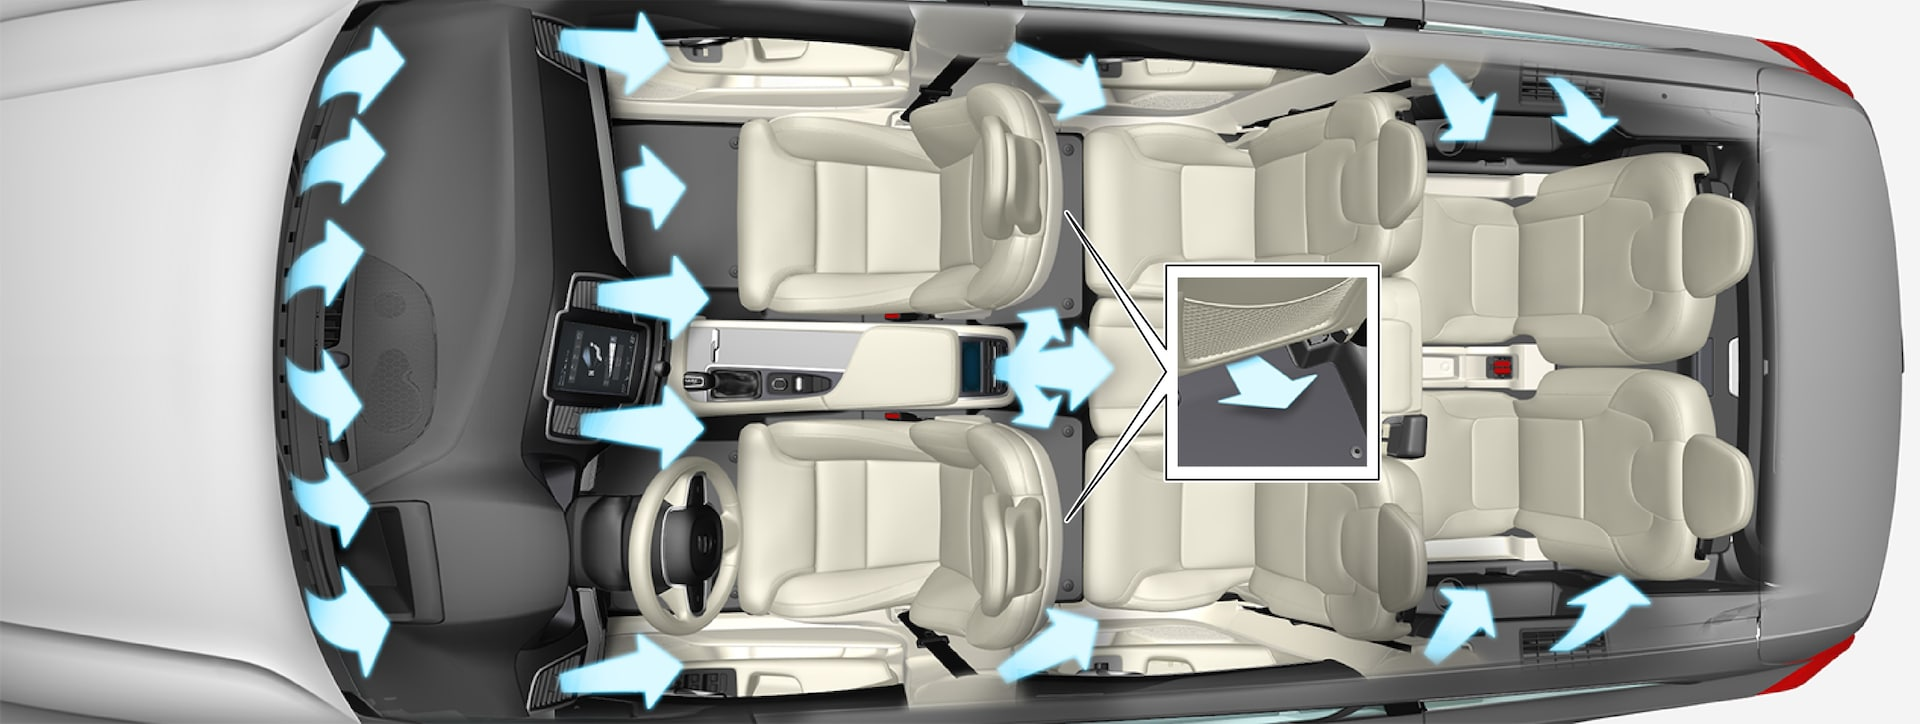 Air distribution in the passenger compartment with 4-zone climate.